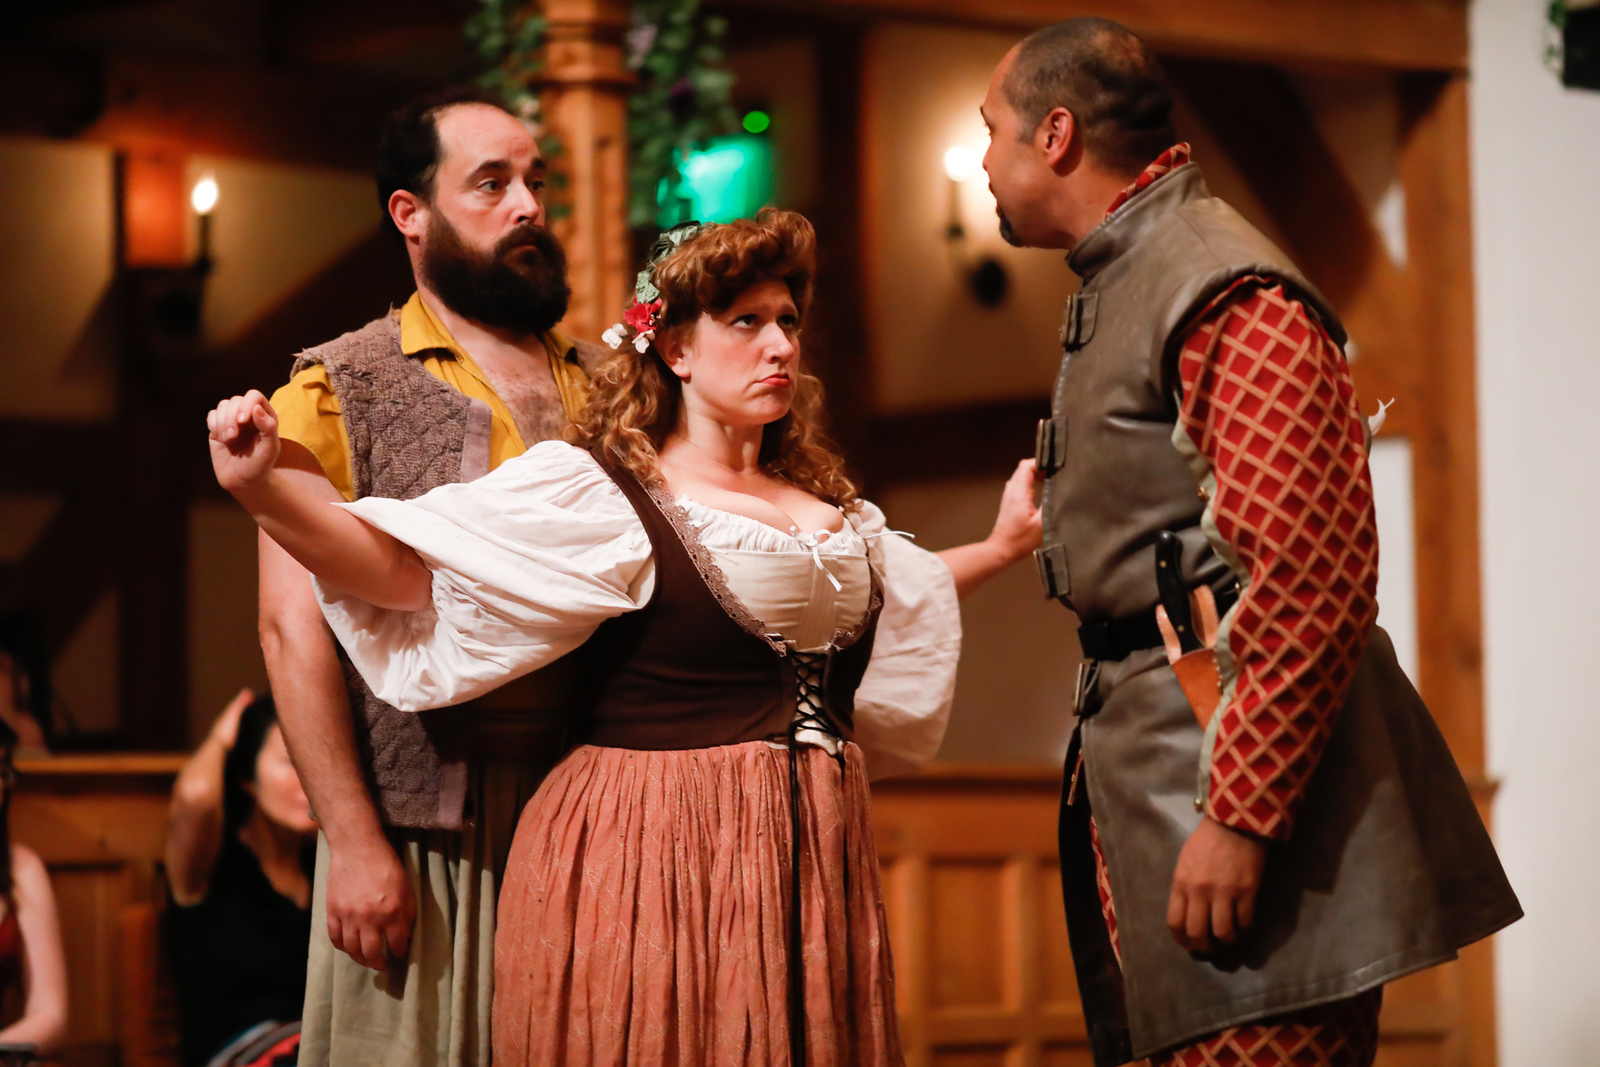 David Anthony Lewis as Costard, Allison Glenzer as Jaquenetta, and René Thornton, Jr. as Berowne in LOVE'S LABOUR'S LOST. Photo by Lindsey Walters.